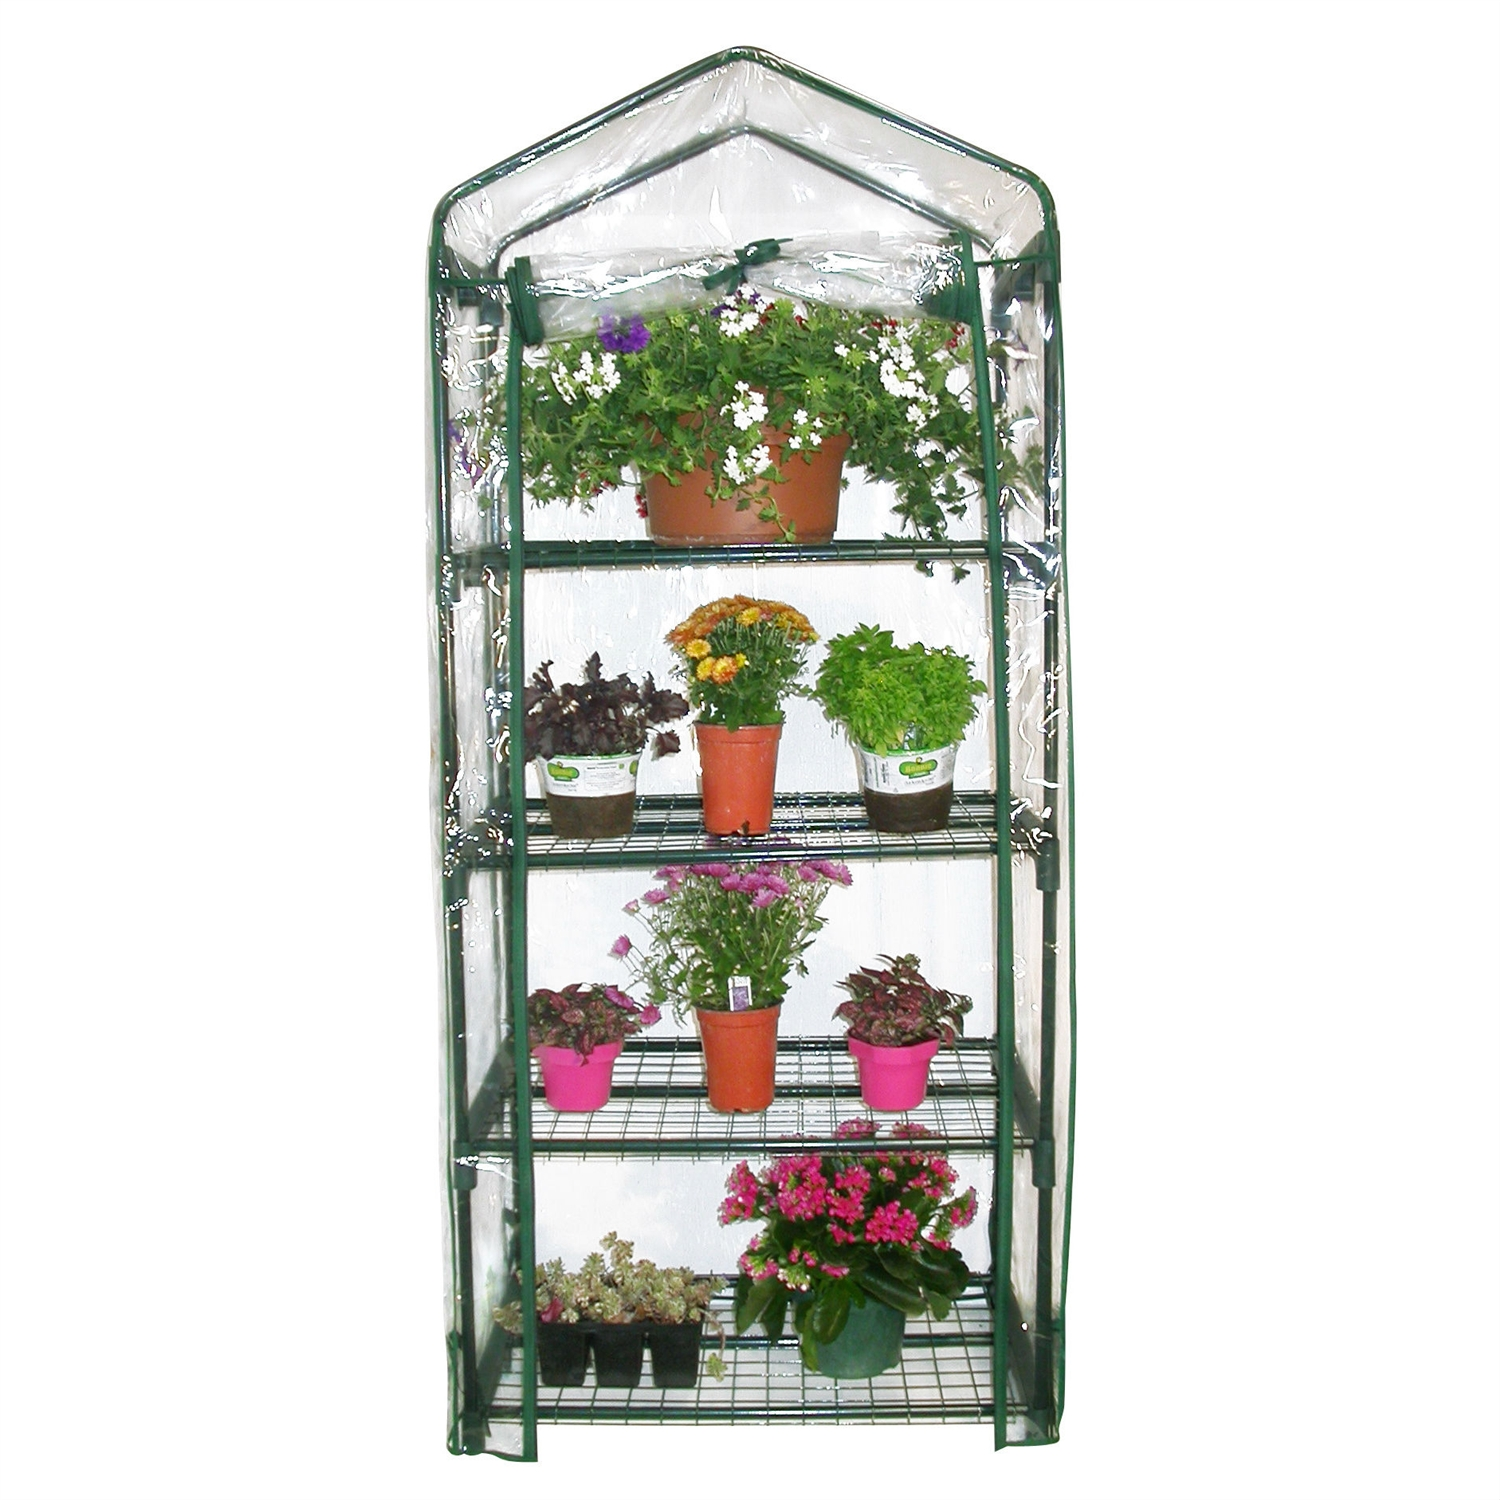 4-Tier Growing Rack Planter Stand Greenhouse with Steel Frame, A4TGR6335 :  This 4-Tier Growing Rack Planter Stand Greenhouse with Steel Frame would be a great addition to your home. It is ideal for extending your growing season and has a uv-treated plastic cover great for any climate. Perfect for your home or garden; Interlock components; Strength and durability; Steel mesh shelving provides ideal drainage and air circulation; Frame constructed of powder-coated steel.